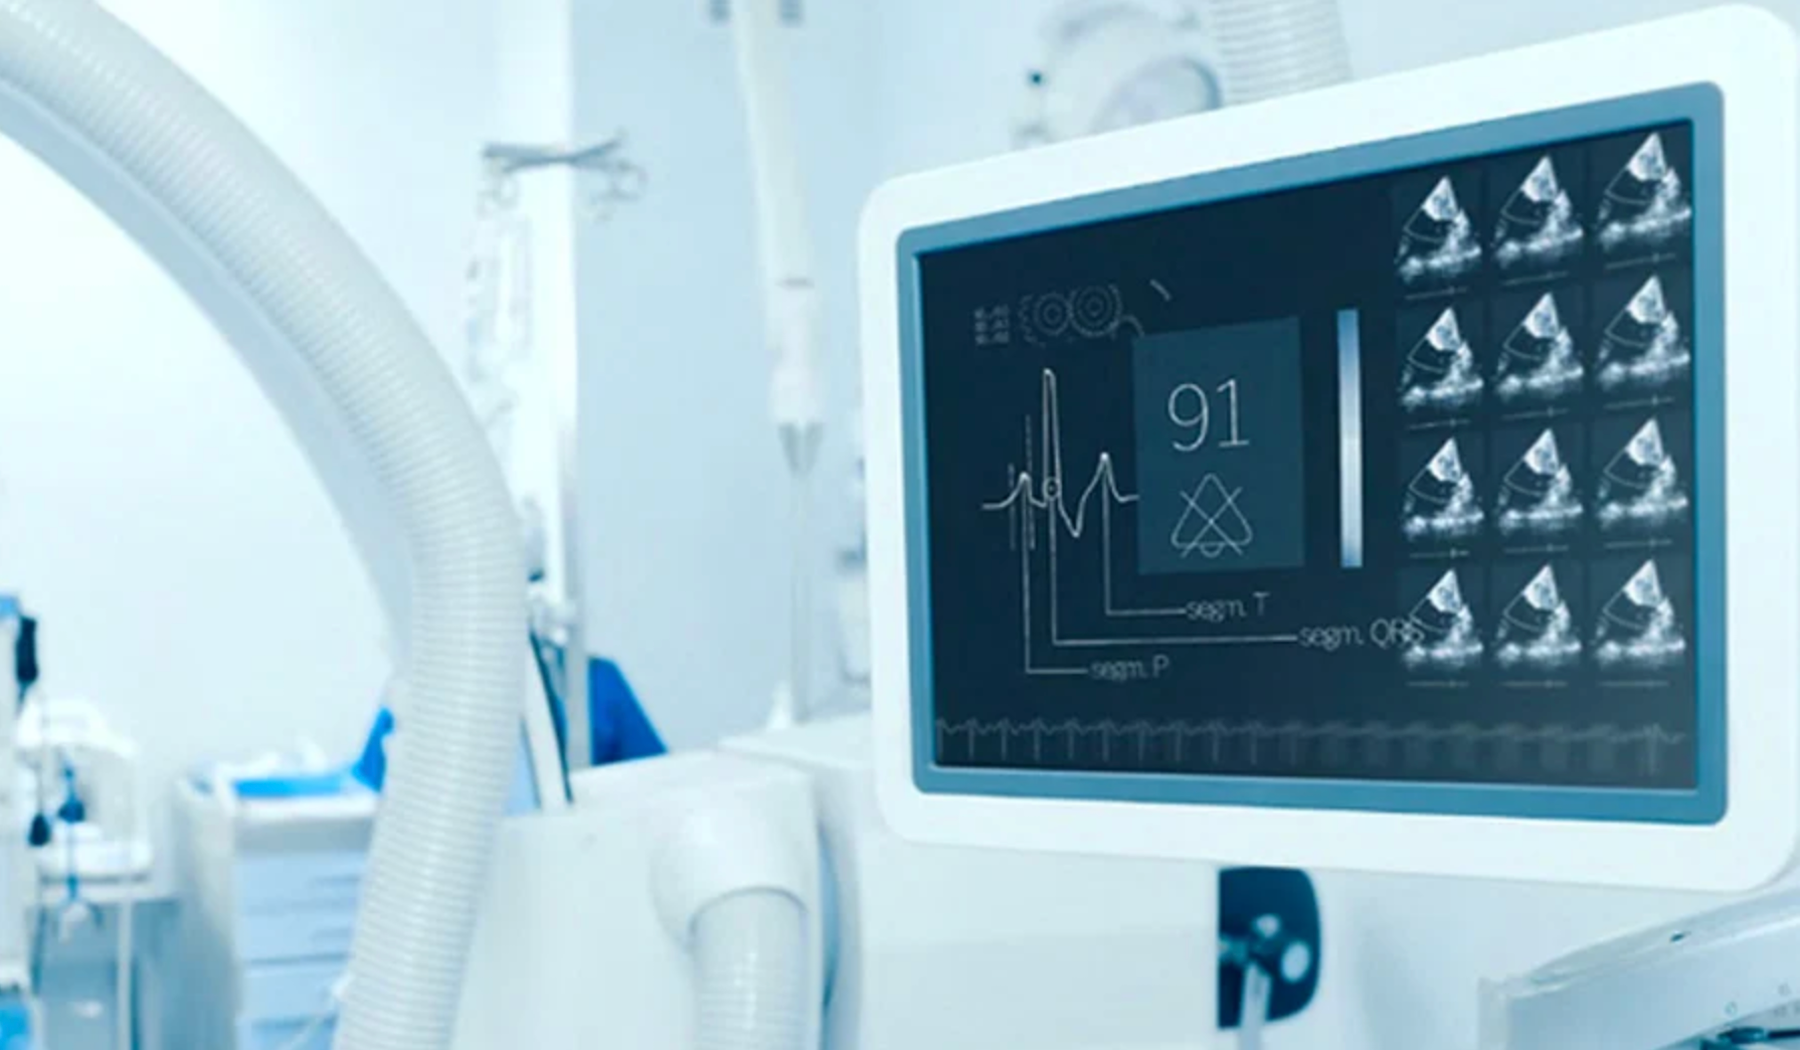 Accruent - Services & Support - Medical Equipment Lifecycle Management - Hero